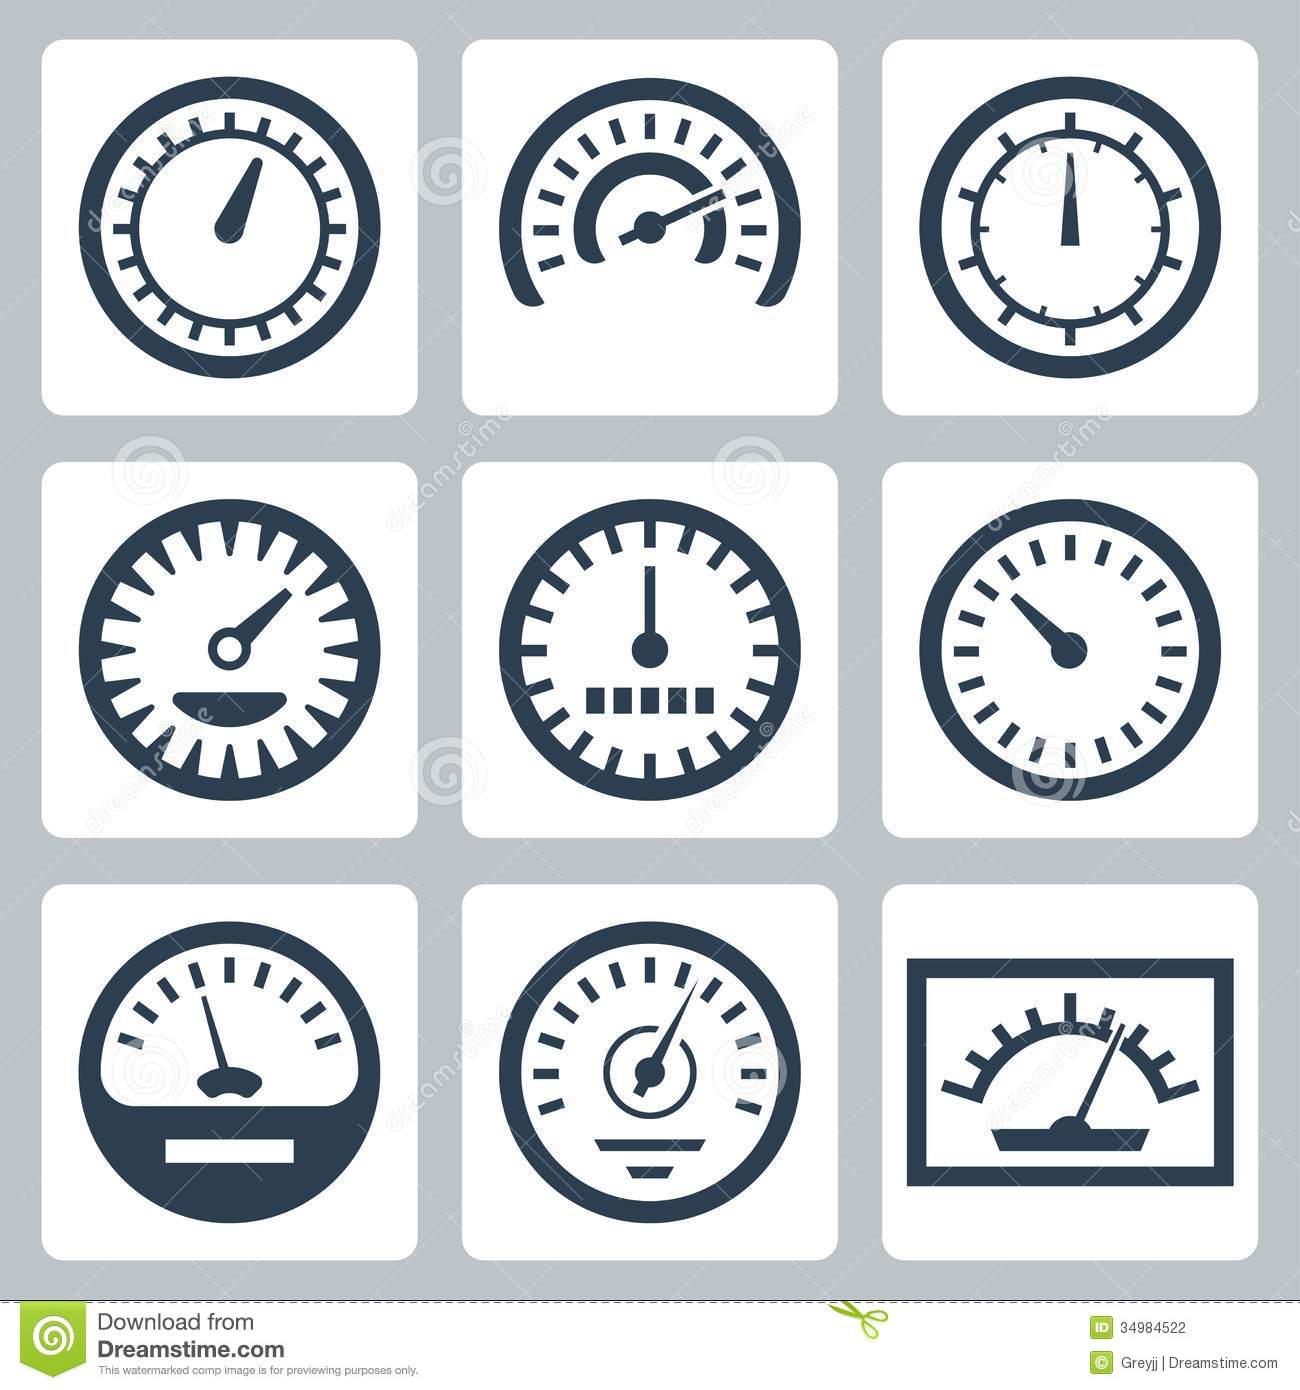 Vector meters icons set stock vector. Illustration of energy - 34984522